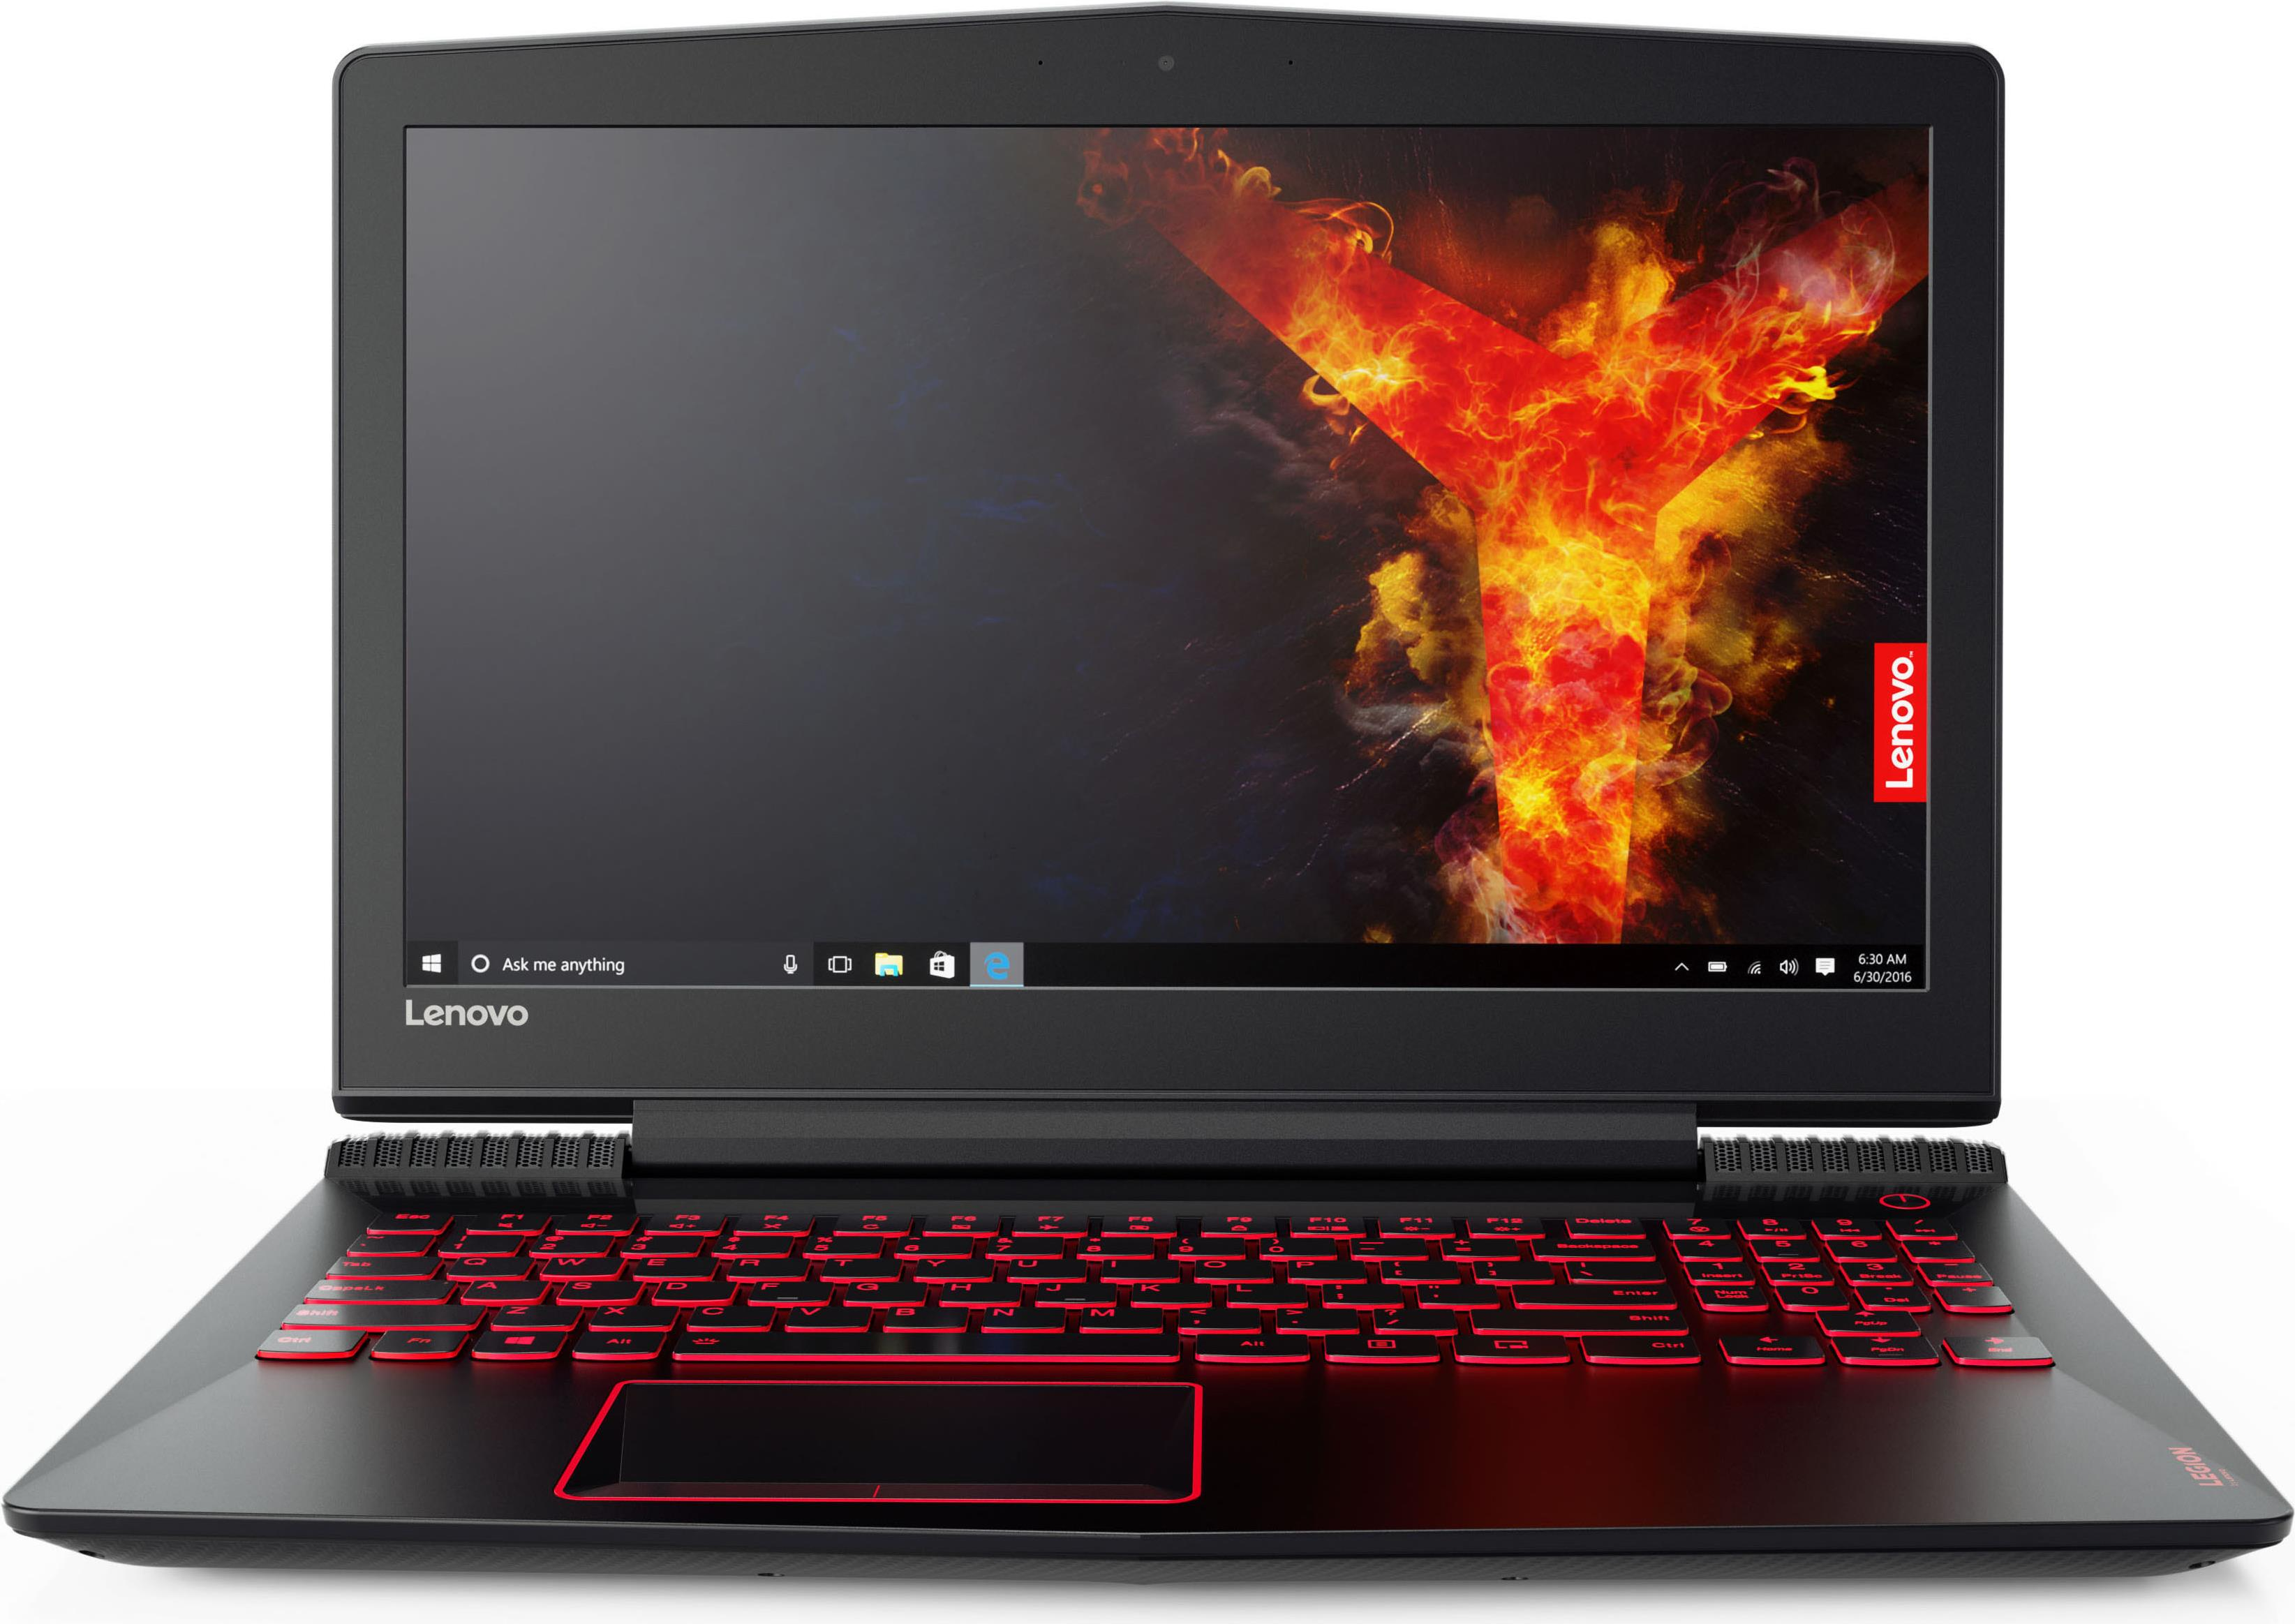 Lenovo Legion Y520 15IKBA 80WY Core i5 7300HQ 2 5 GHz Win 10 Home 64 Bit 8 GB RAM 1 TB HDD